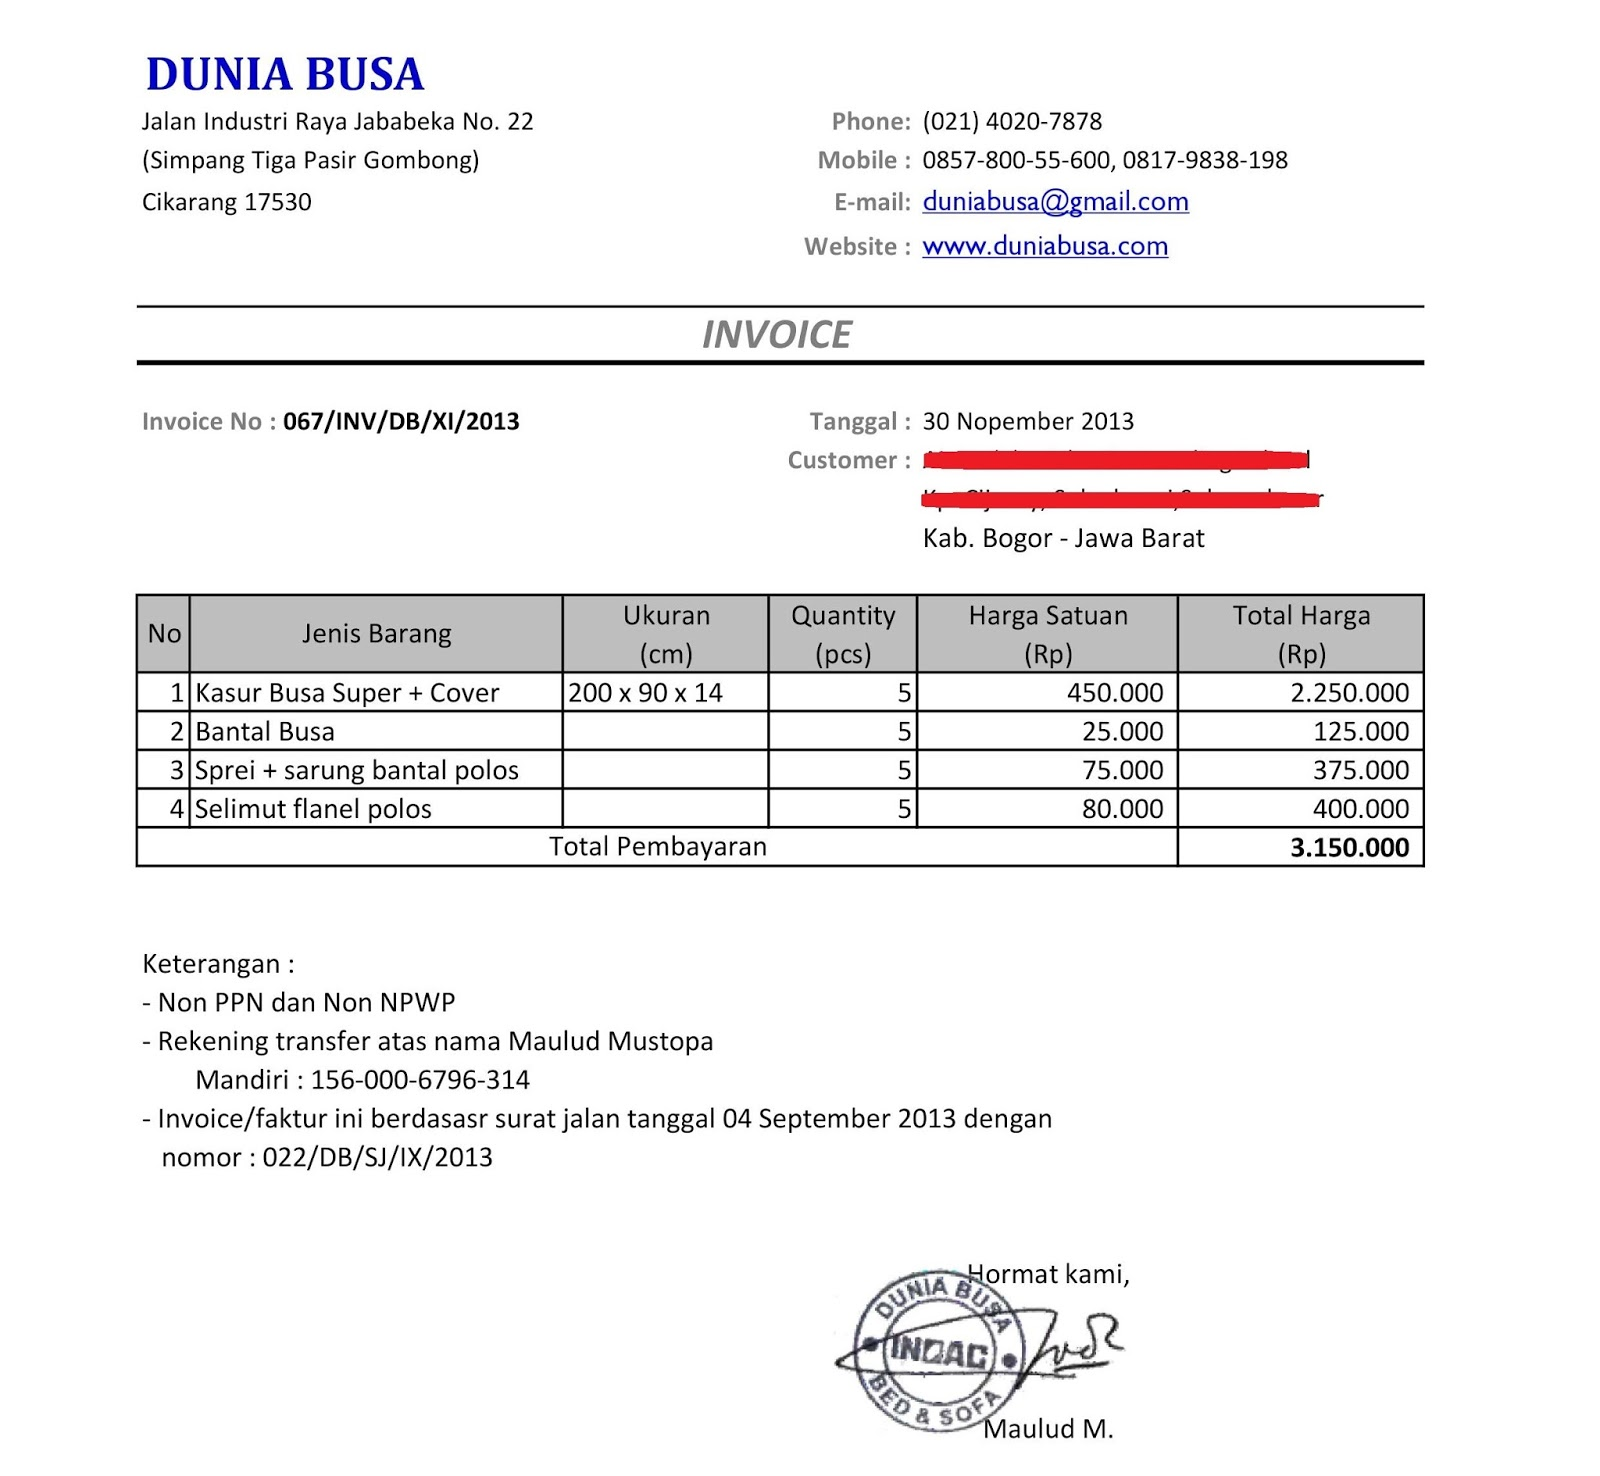 Centralasianshepherdus  Outstanding Free Invoice Online  Create Invoice Online  Invoice Template  With Glamorous Contoh Format Invoice Atau Surat Tagihan  Brankas Arsip  Free Invoice Online With Lovely Tax Invoice Template Word Also Tax Invoice Example In Addition Sample Invoice Receipt And Making Invoices In Excel As Well As Dealer Invoice For New Cars Additionally Purchase Order Invoice Template From Sklepco With Centralasianshepherdus  Glamorous Free Invoice Online  Create Invoice Online  Invoice Template  With Lovely Contoh Format Invoice Atau Surat Tagihan  Brankas Arsip  Free Invoice Online And Outstanding Tax Invoice Template Word Also Tax Invoice Example In Addition Sample Invoice Receipt From Sklepco